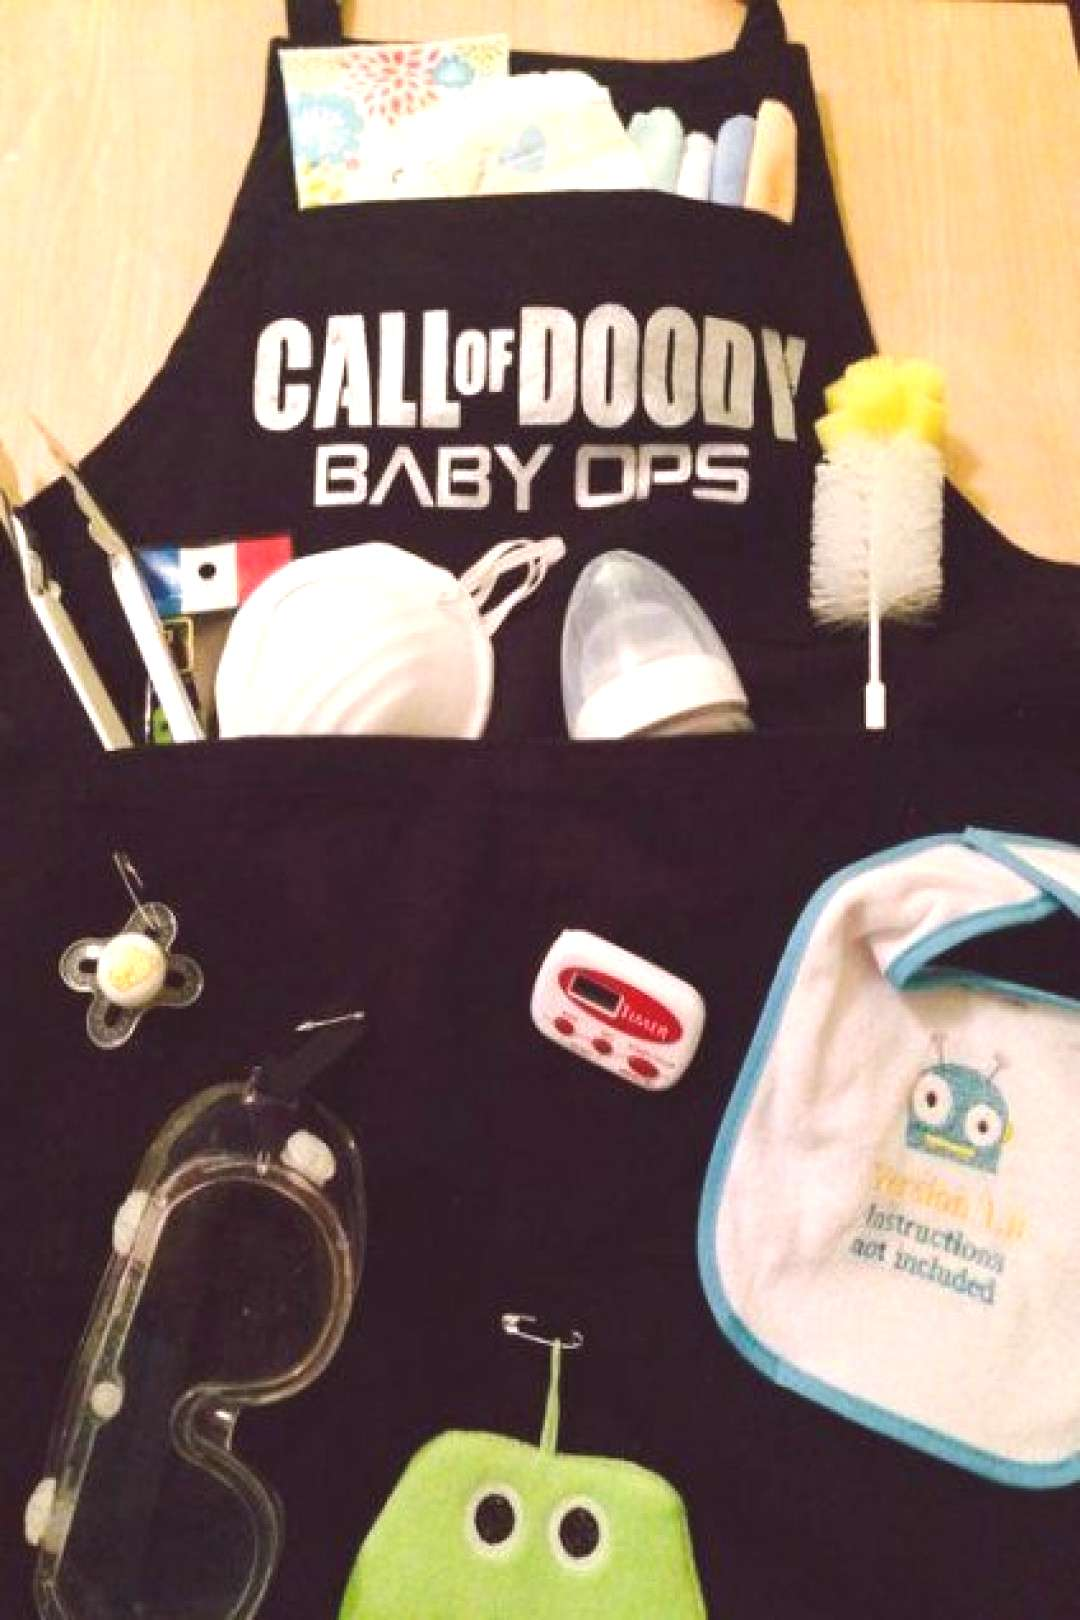 Baby onesies daddy families 31 trendy ideas - Baby onesies daddy families 31 trendy ideas -